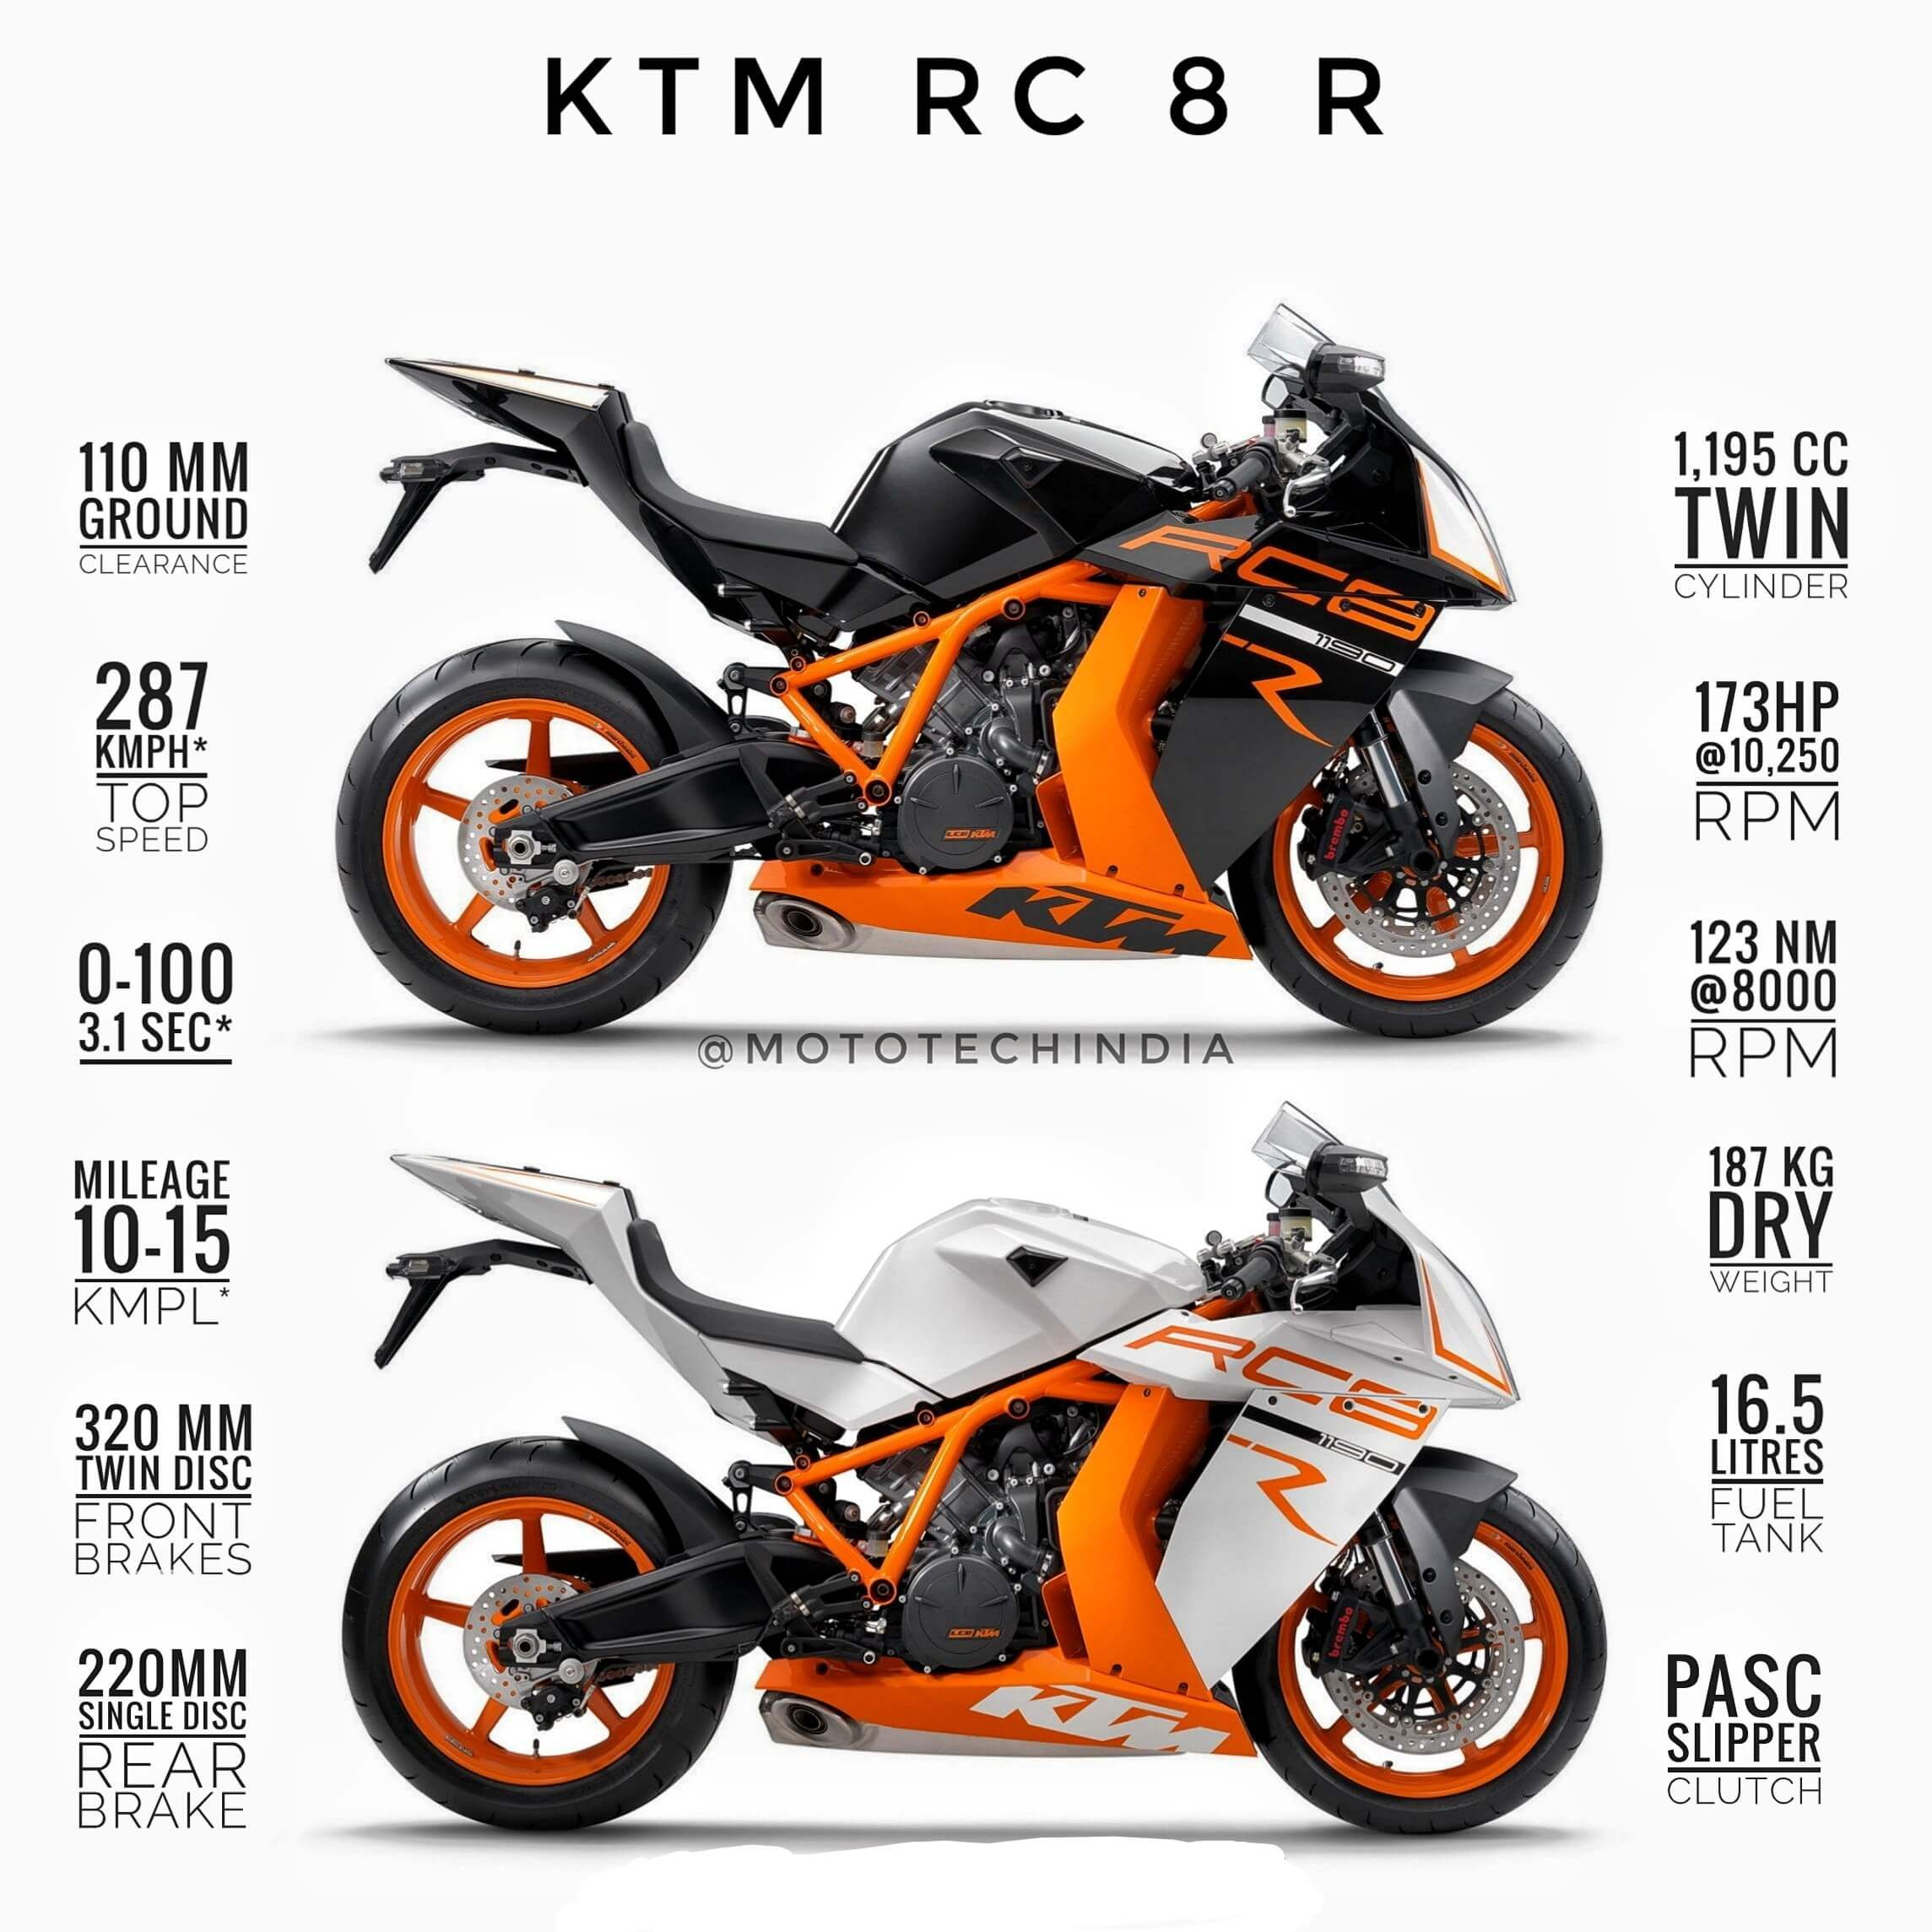 Pin By Lalo On Coches In 2020 Bike Brands Bike Ktm